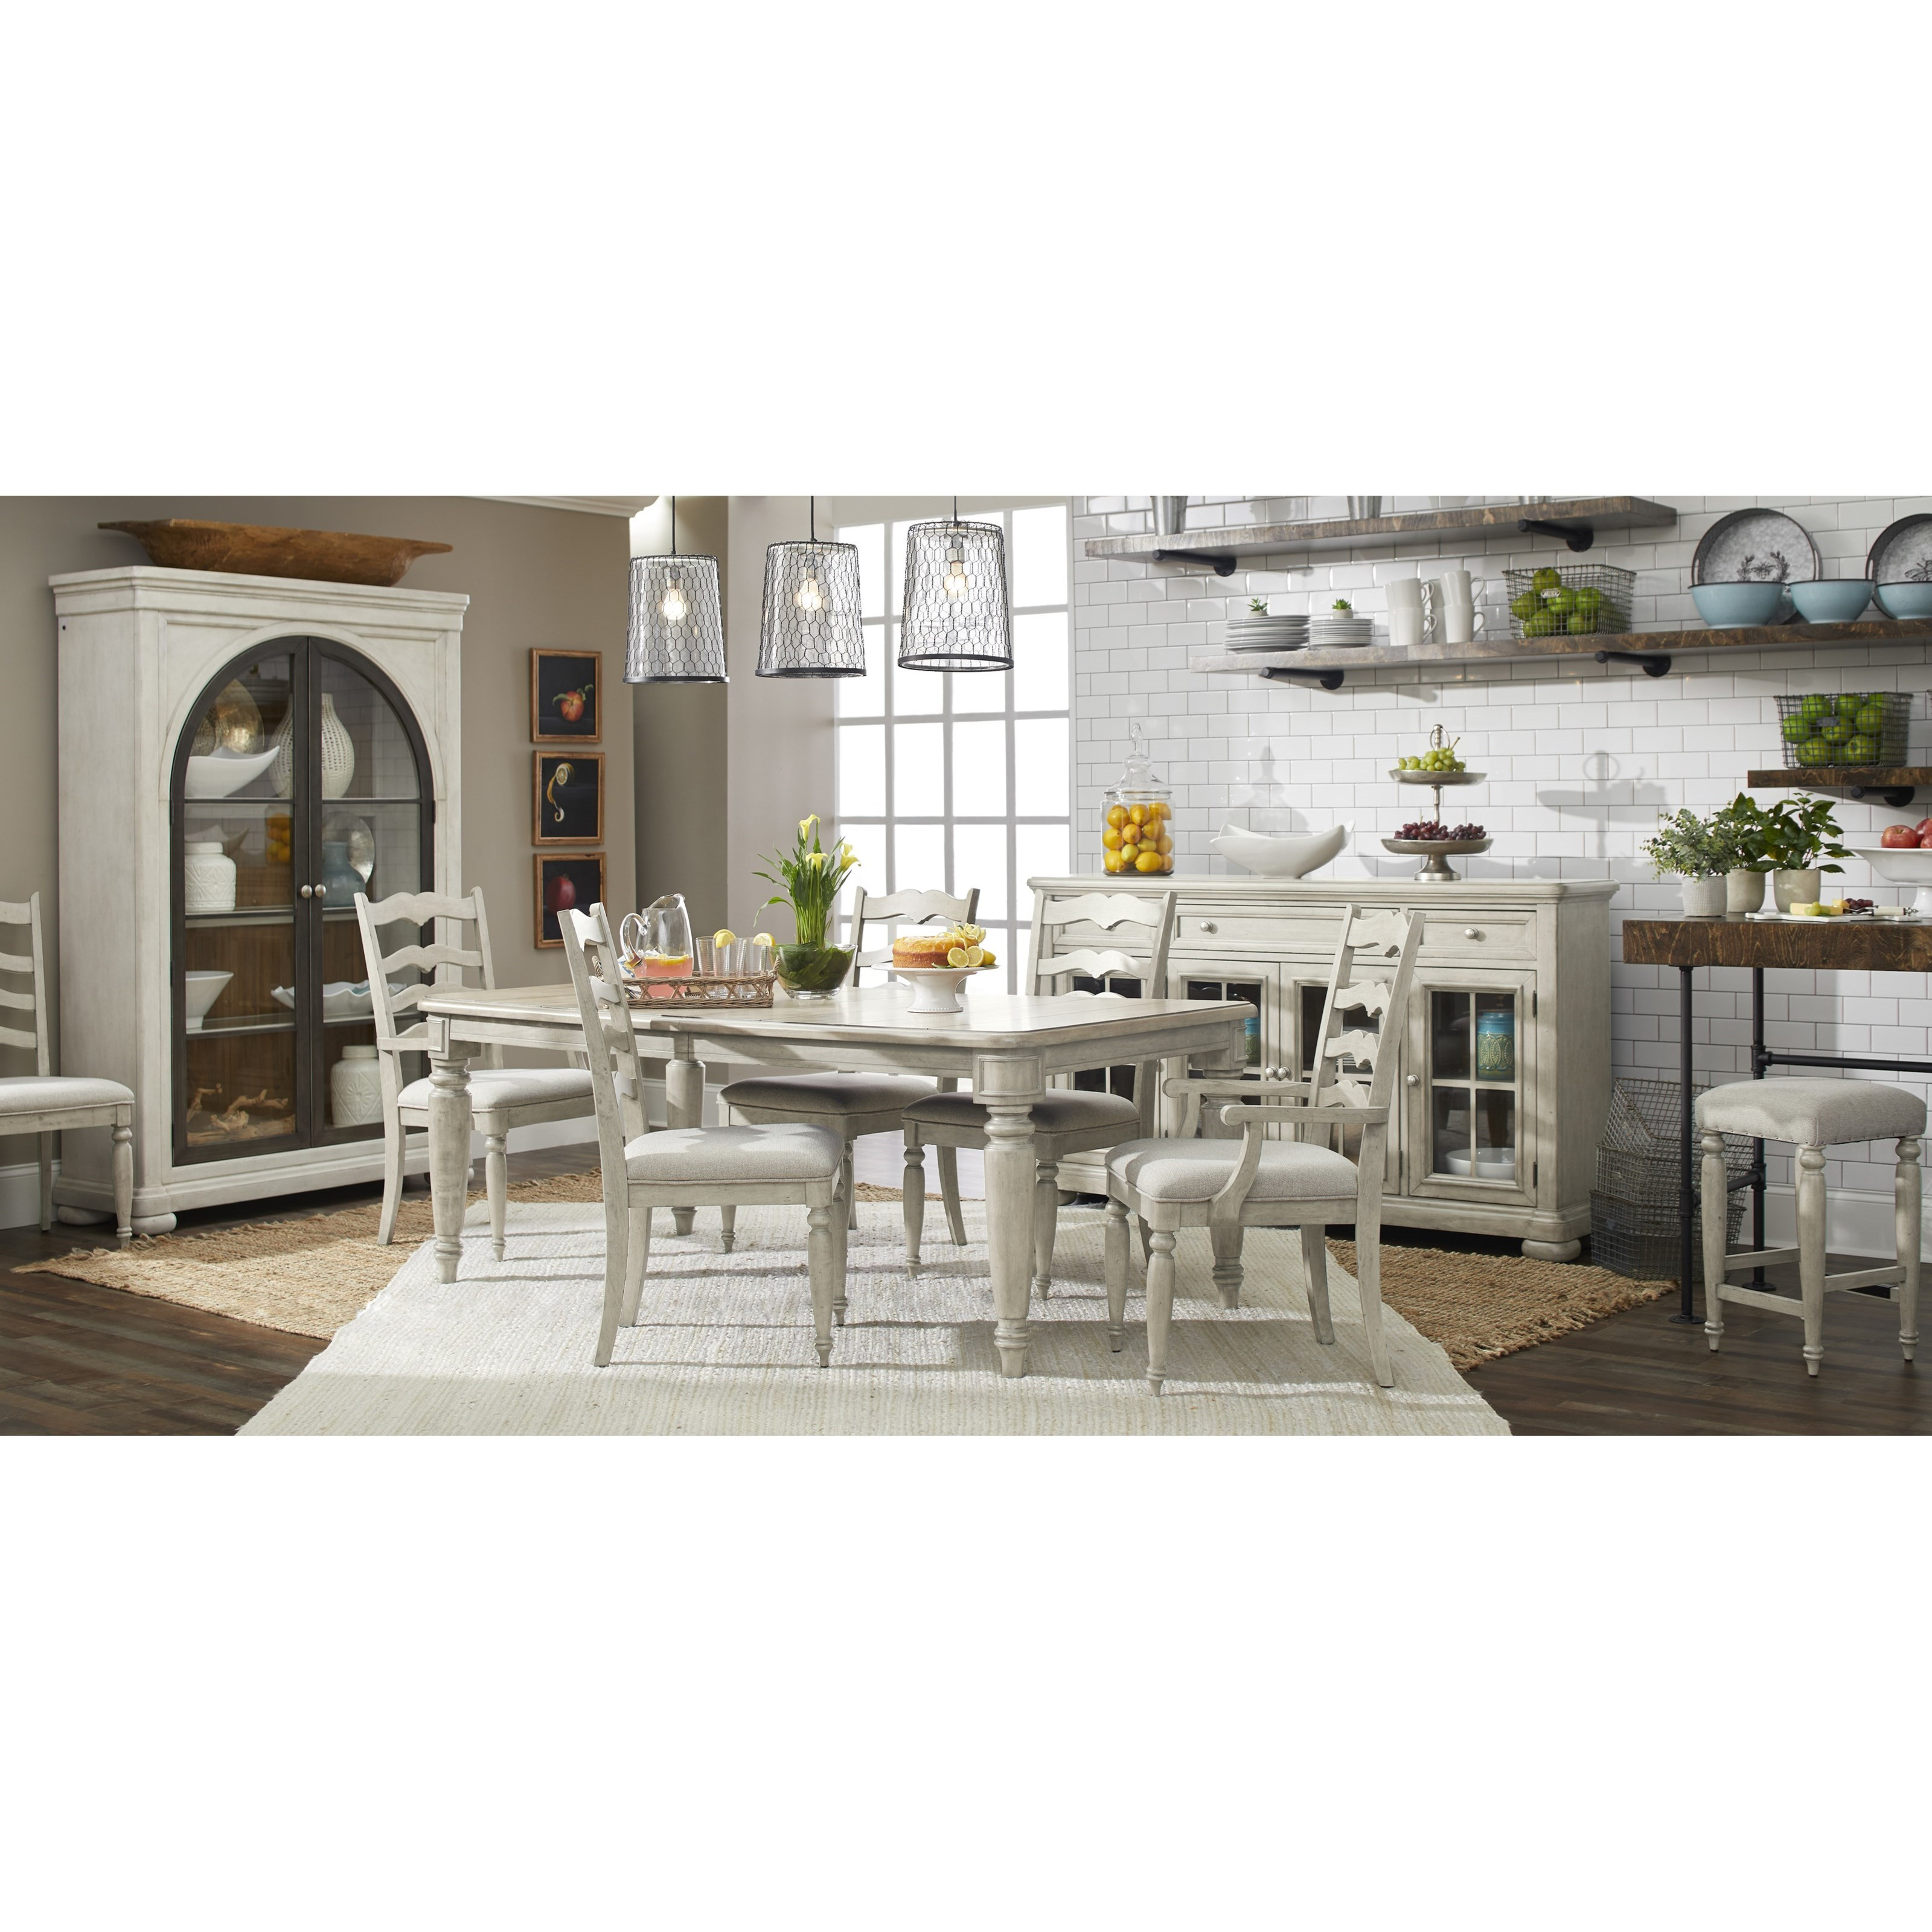 Nashville Formal Dining Group by Trisha Yearwood Home Collection by Klaussner at Johnny Janosik